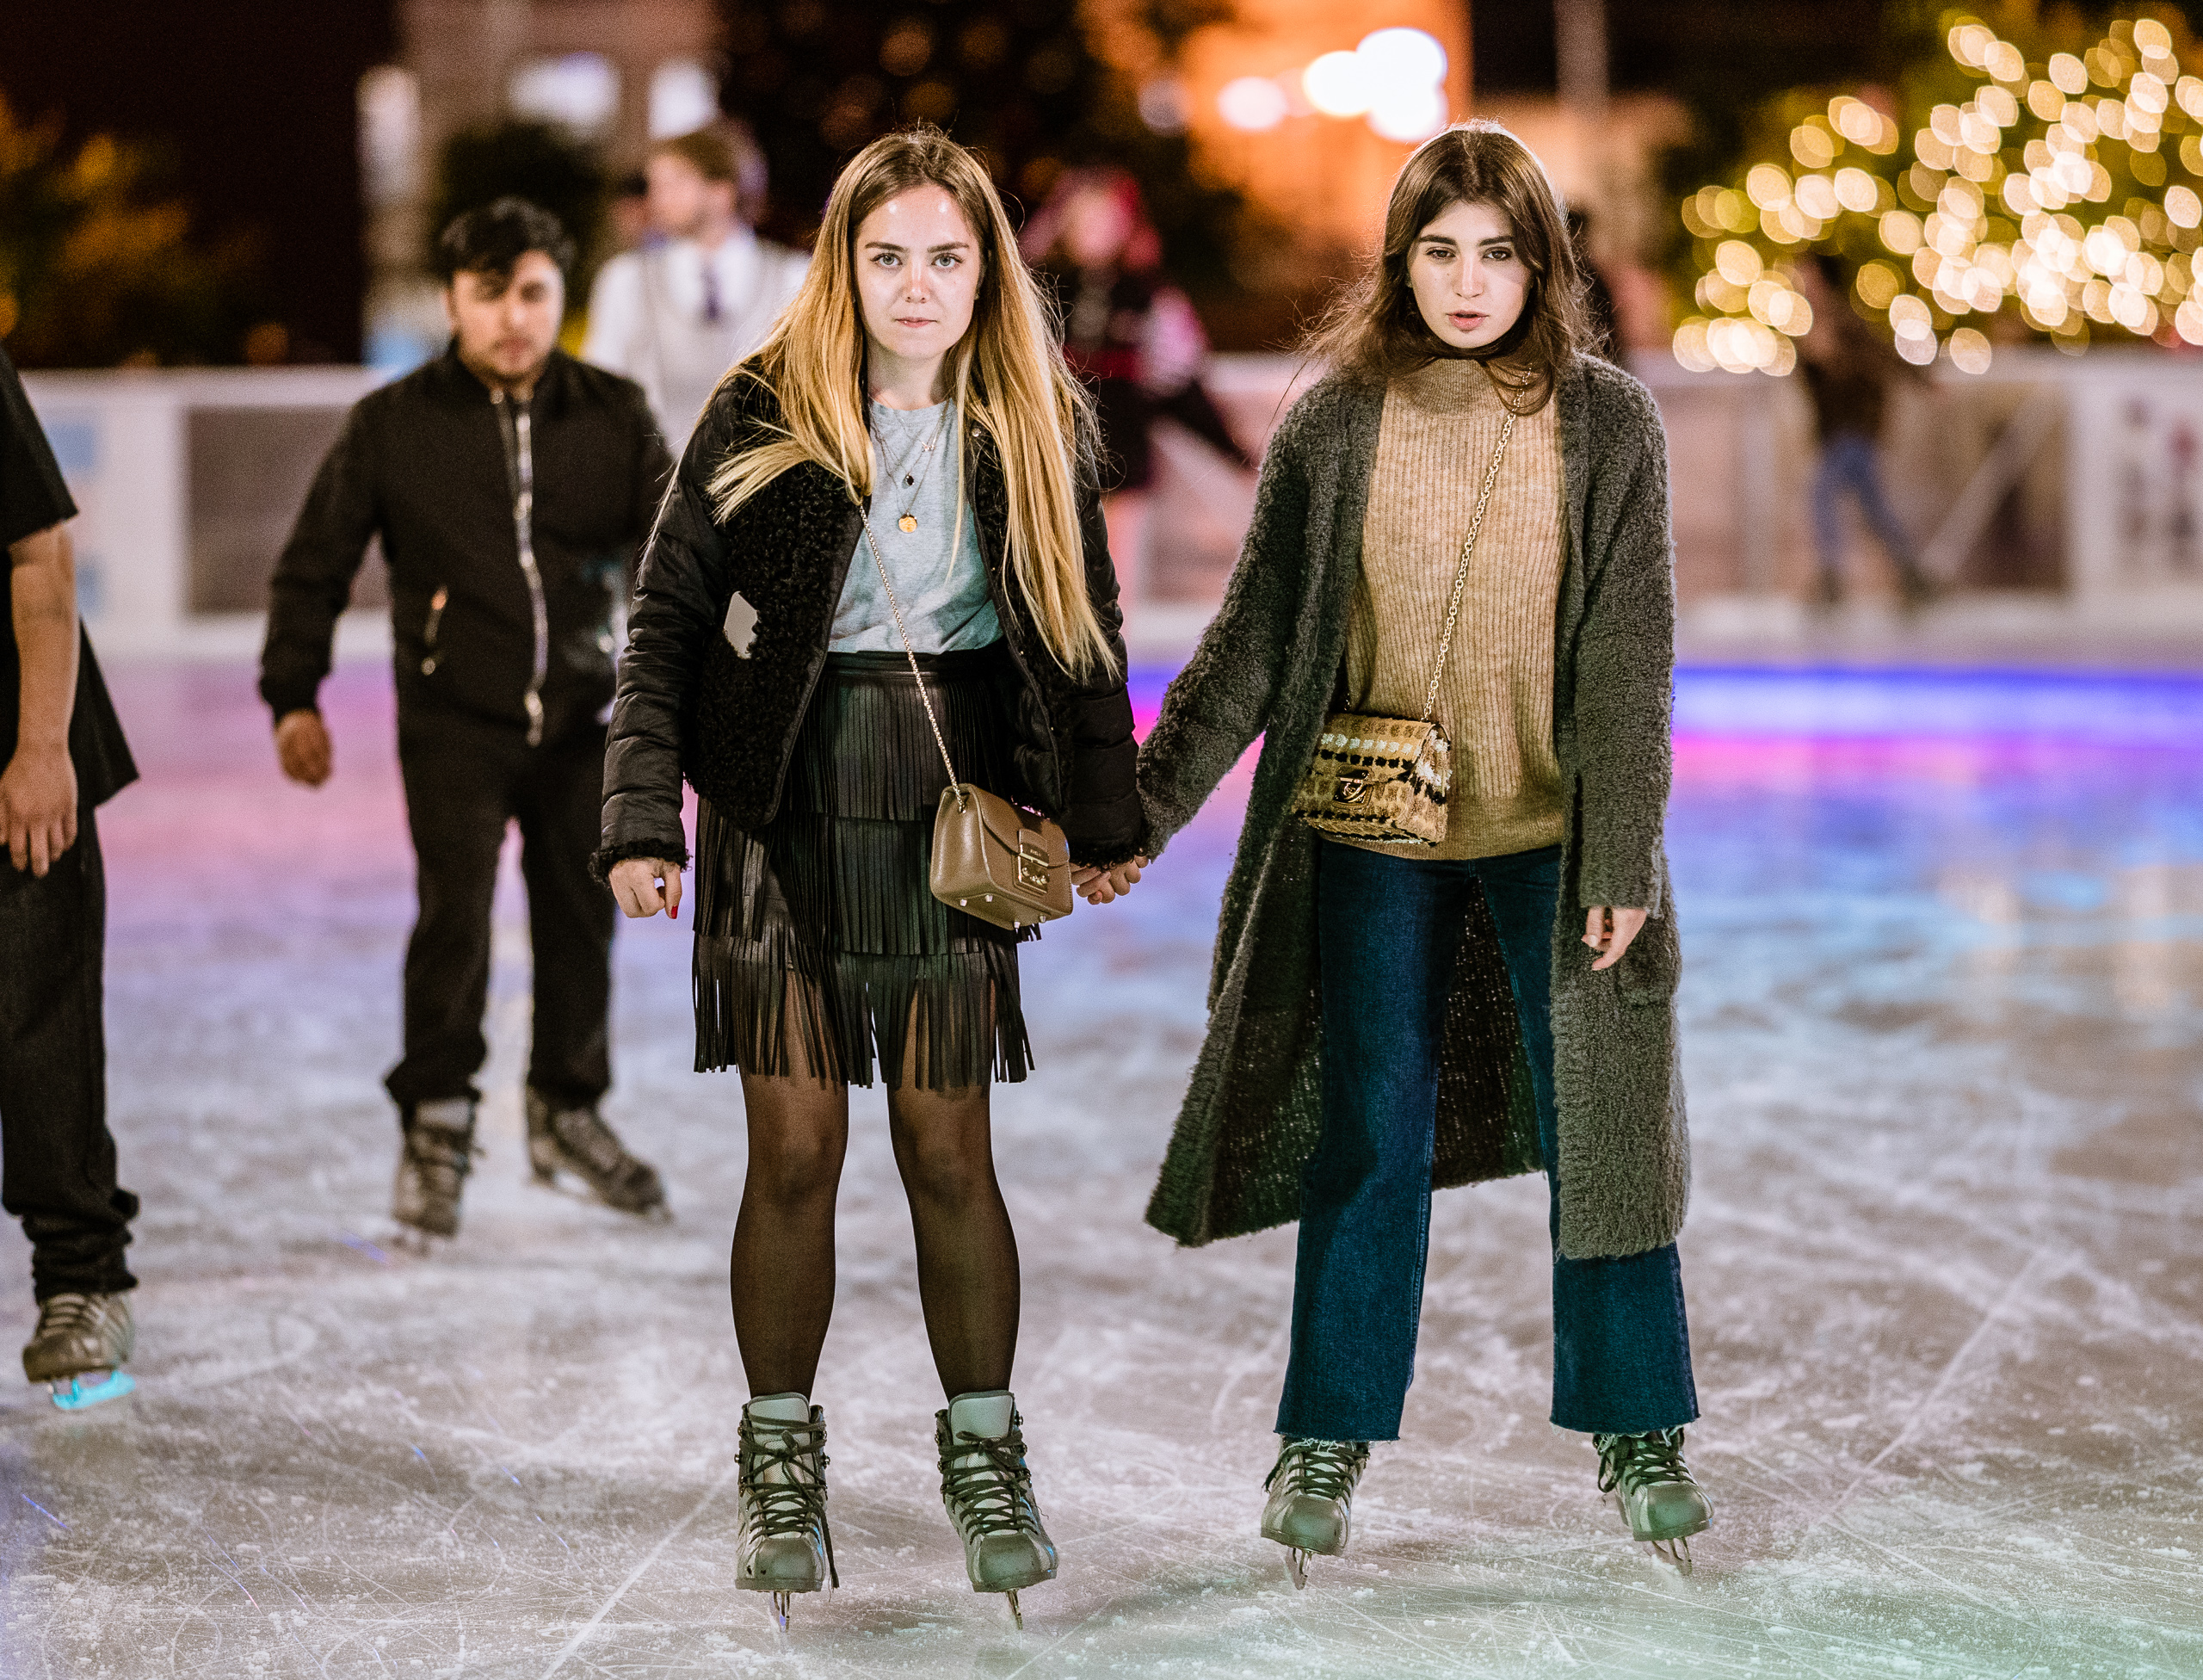 two women hold hands and skate along the ice at the Pershing Square Holiday Ice Rink in Downtown Los Angeles, Holiday Season 2018.